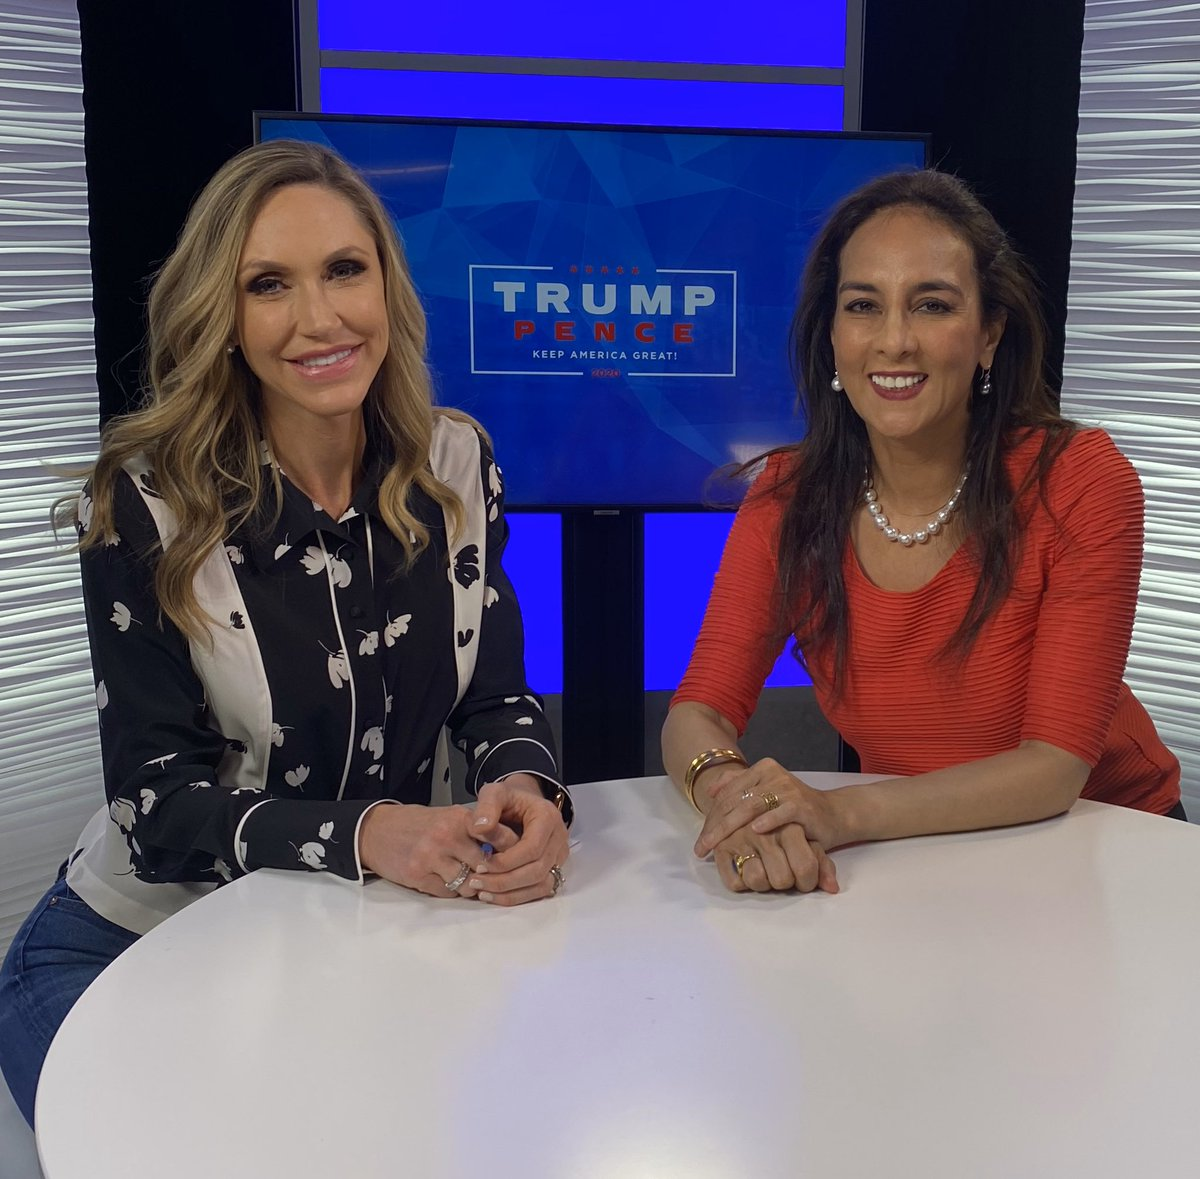 Enjoyed visiting with @LaraLeaTrump at Studio 45 in the Trump Tower to talk Victory2020, Dems in Disarray, #somuchwinning, & more! Thanks Lara for your leadership in making our country great again!